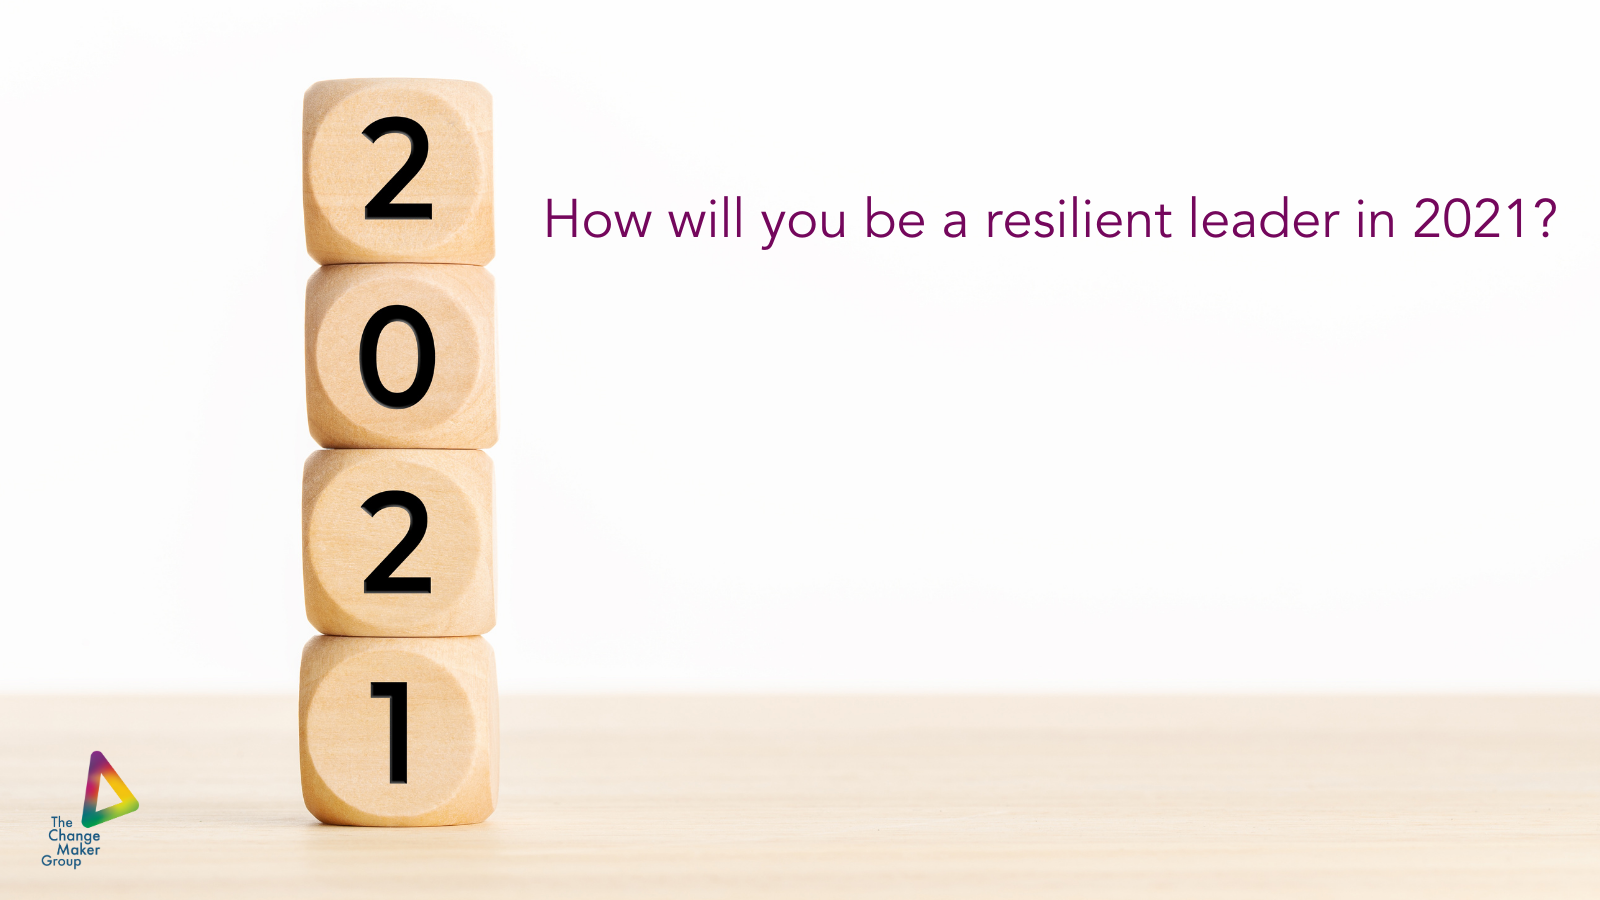 2021 Themes for a Resilient Leader